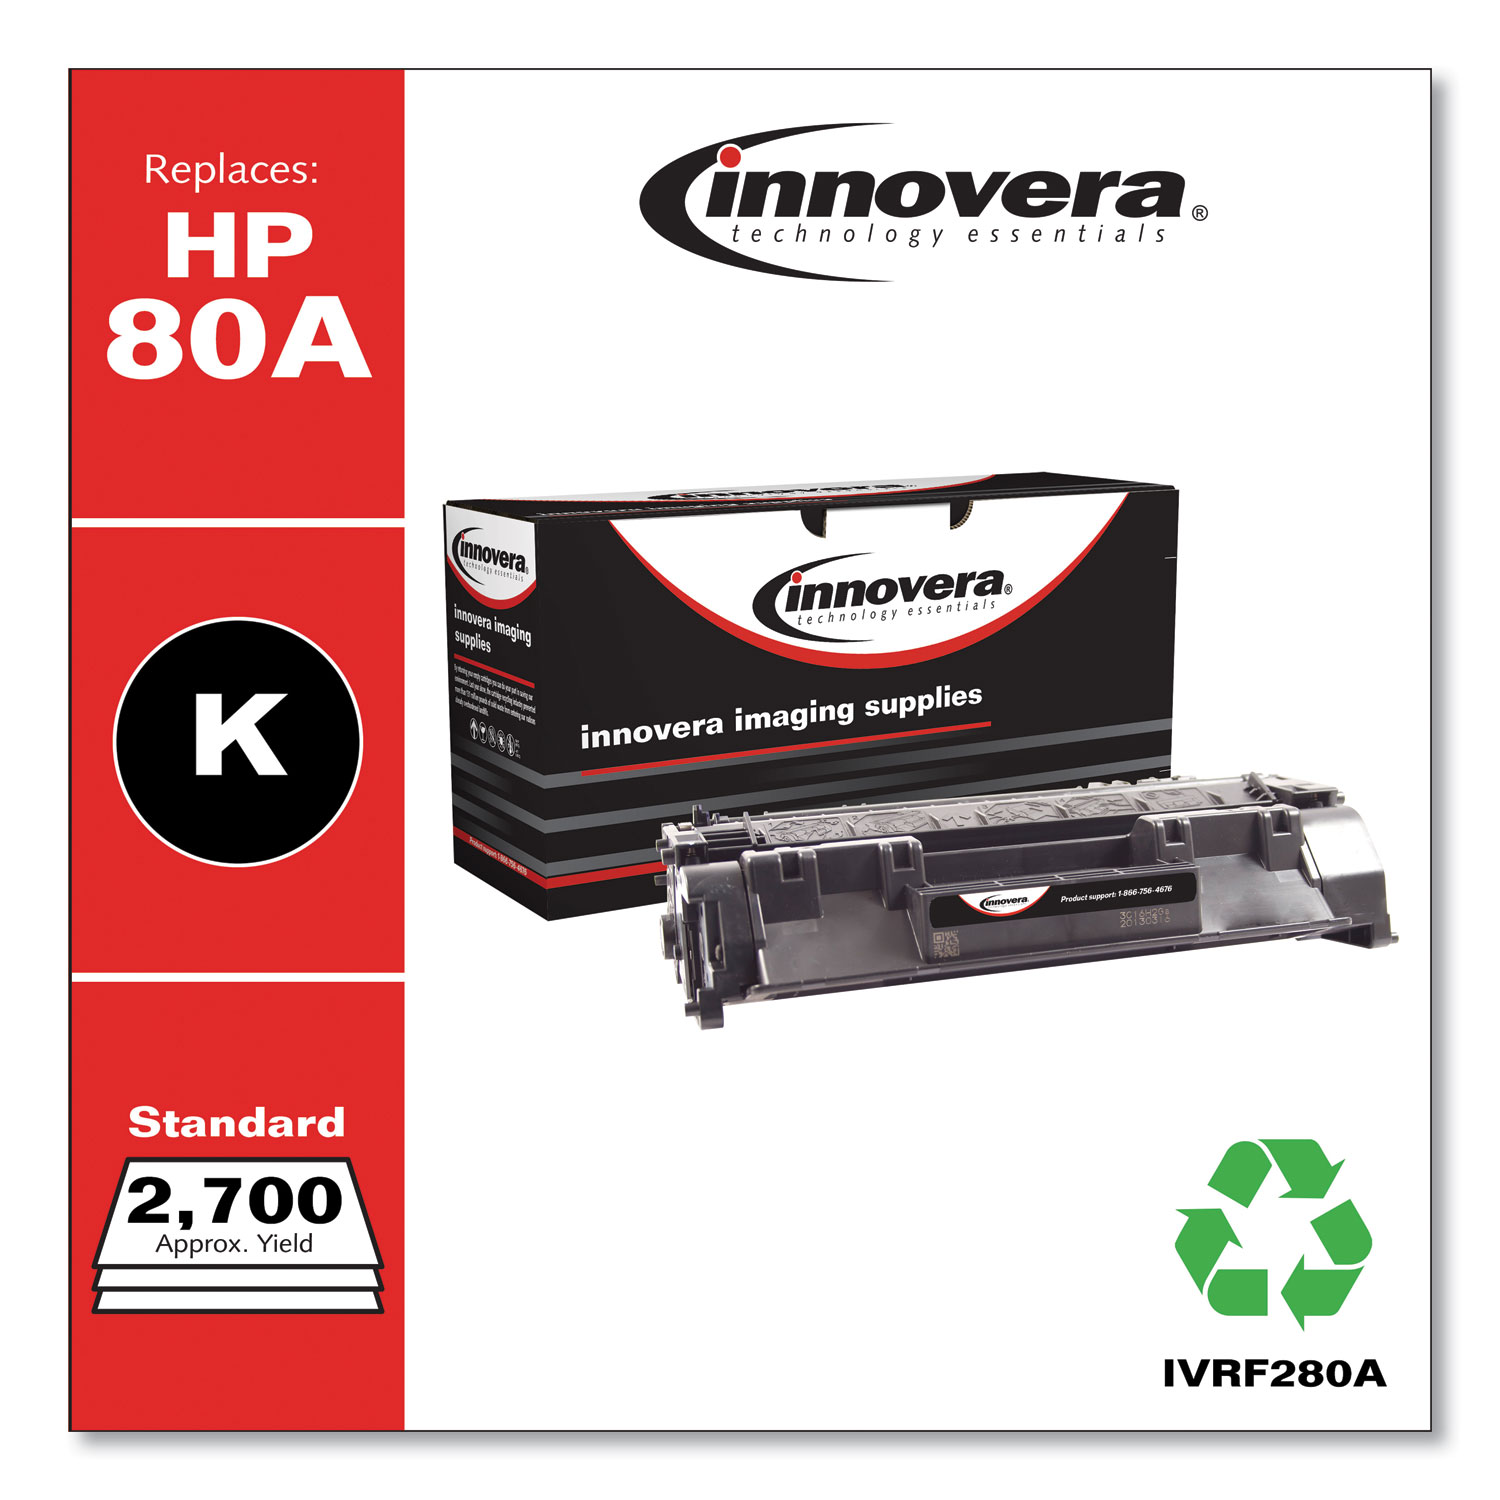 Remanufactured Black Toner Cartridge, Replacement for HP 80A (CF280A), 2,700 Page-Yield